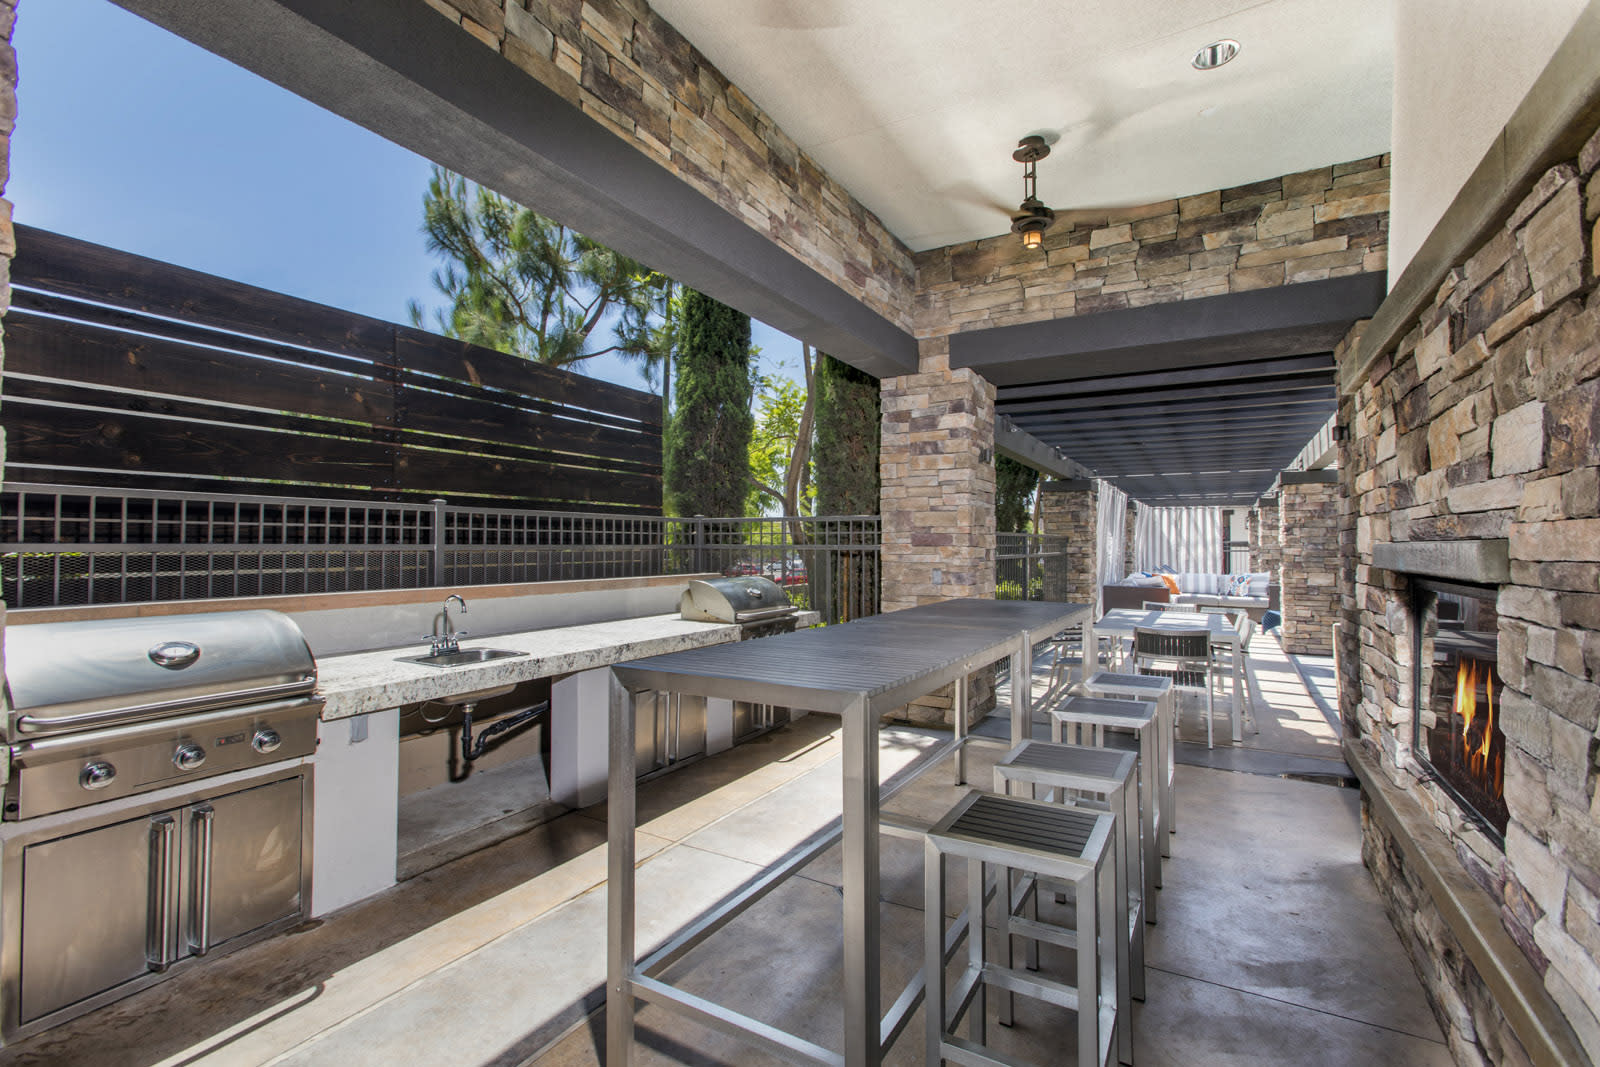 Outdoor grill and seating near fireplace